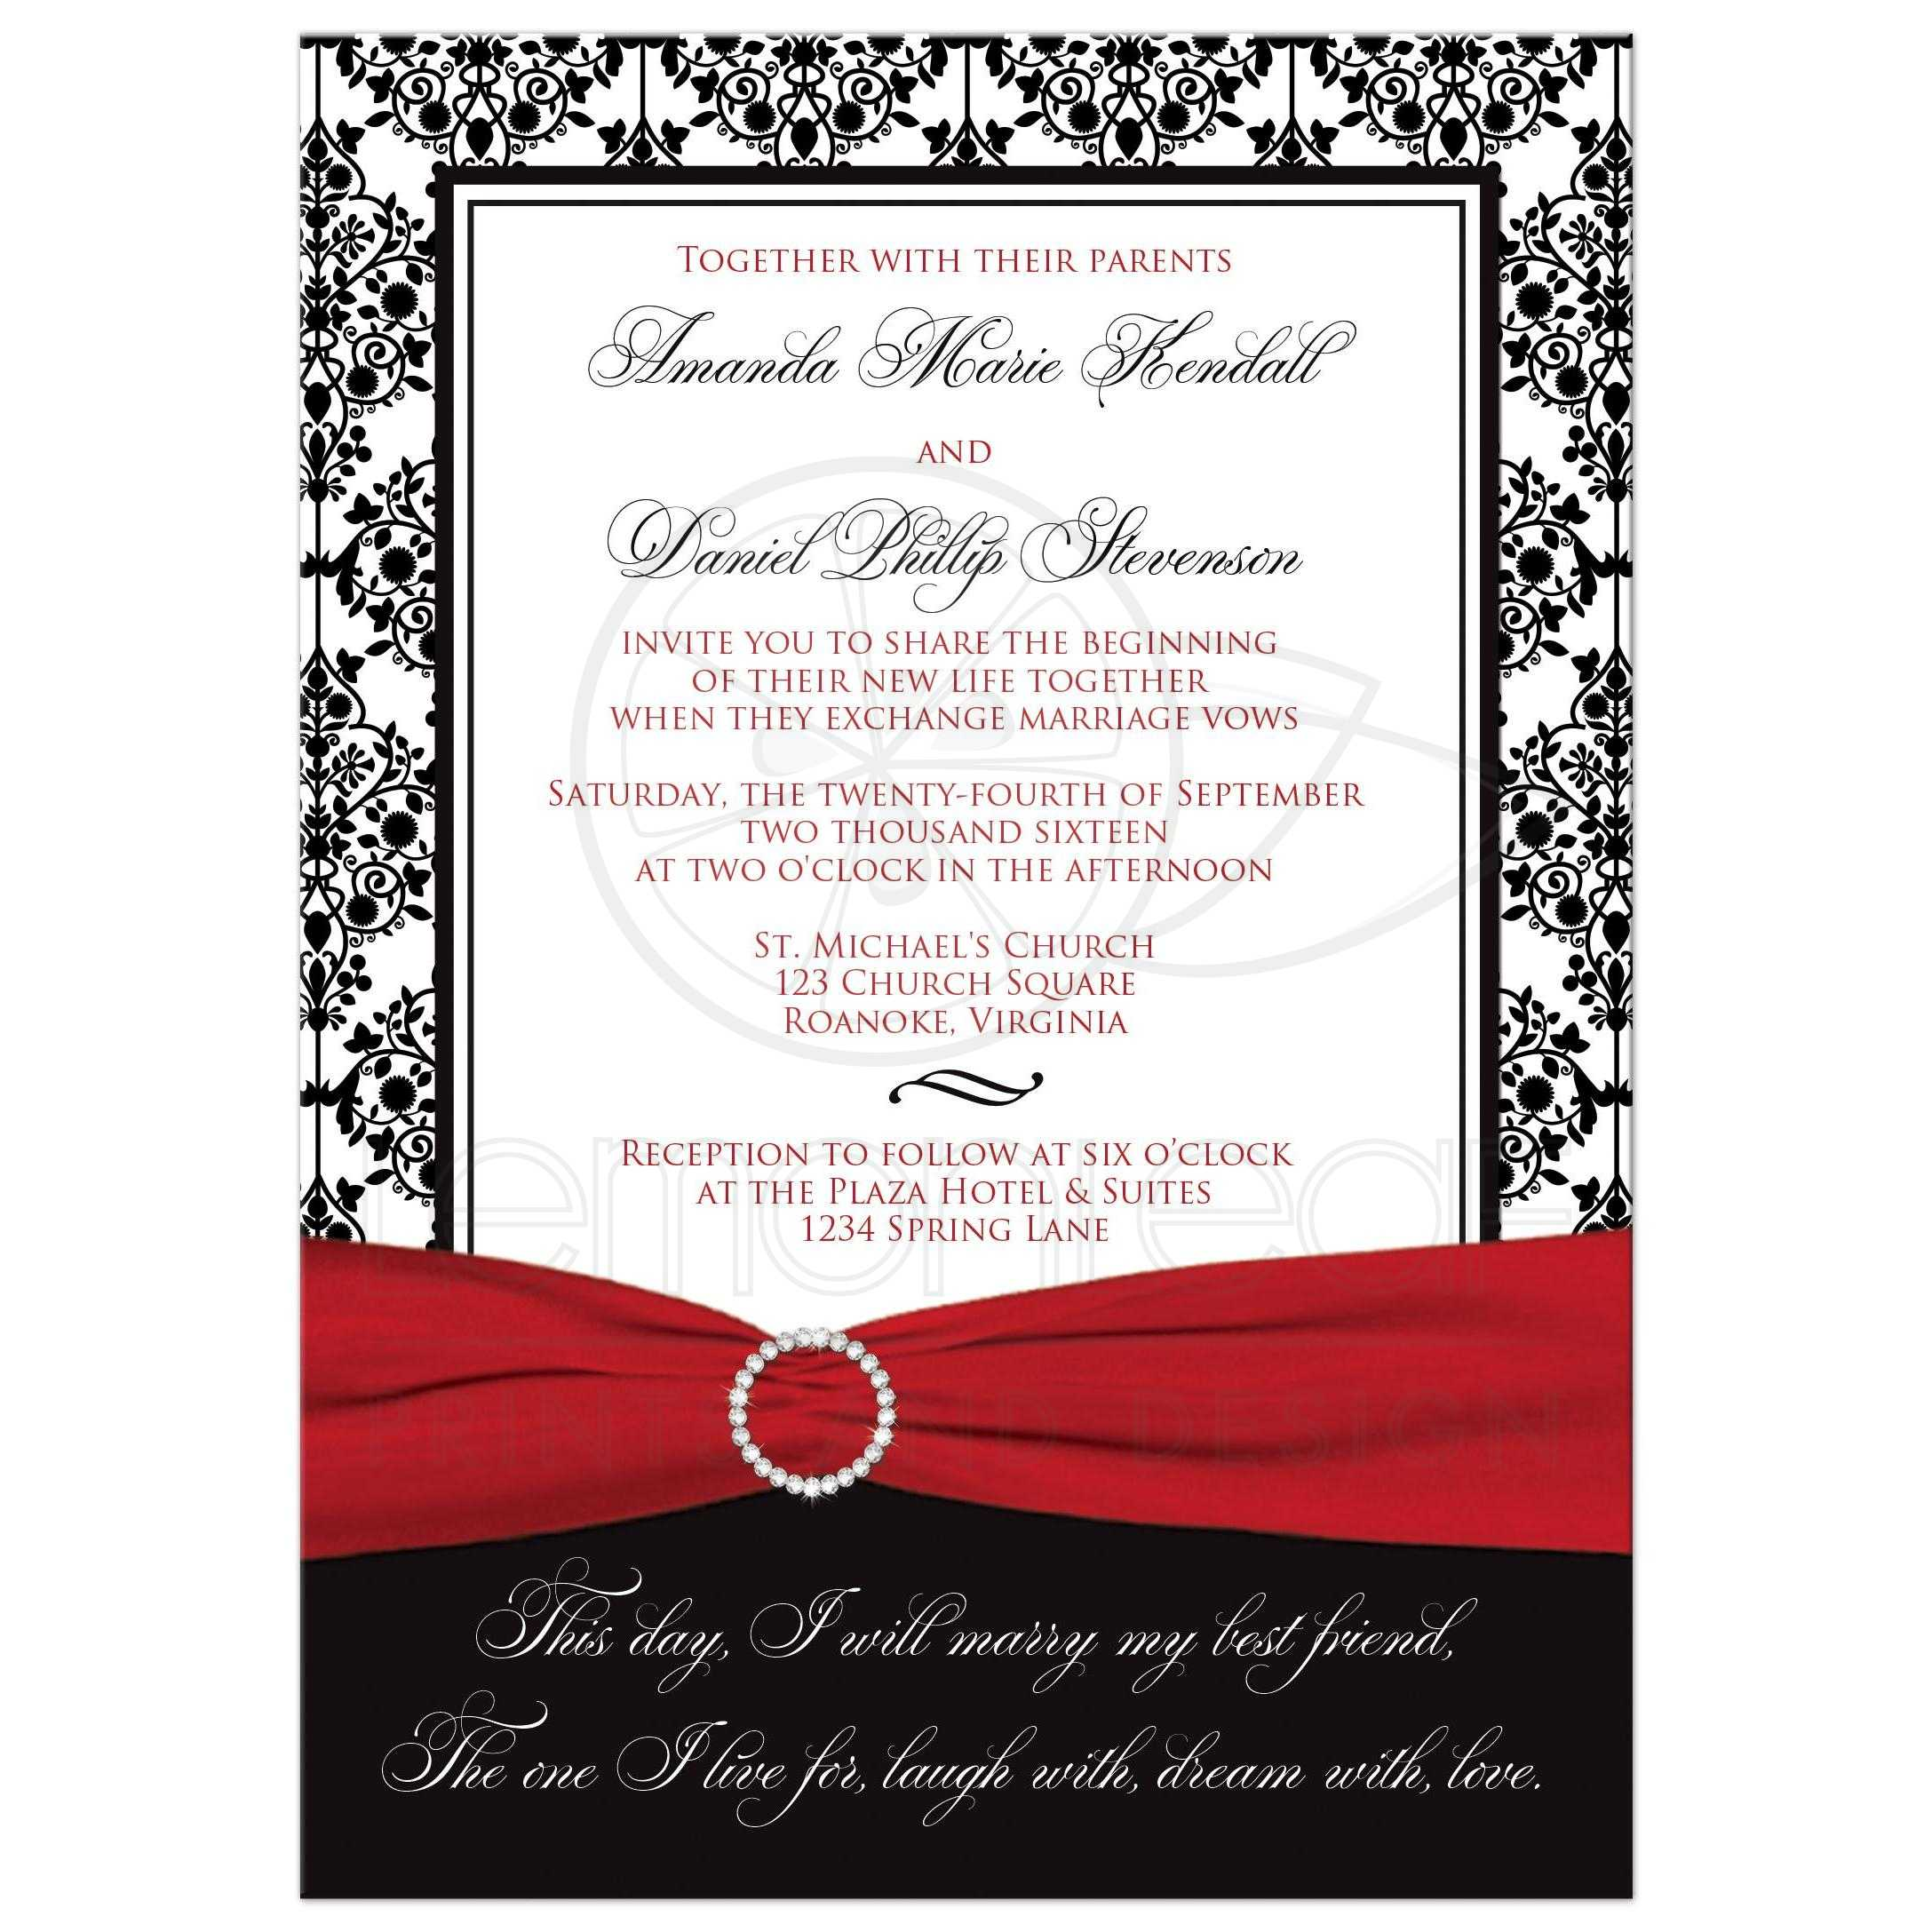 red white and black damask wedding invitations - new wedding, Wedding invitations